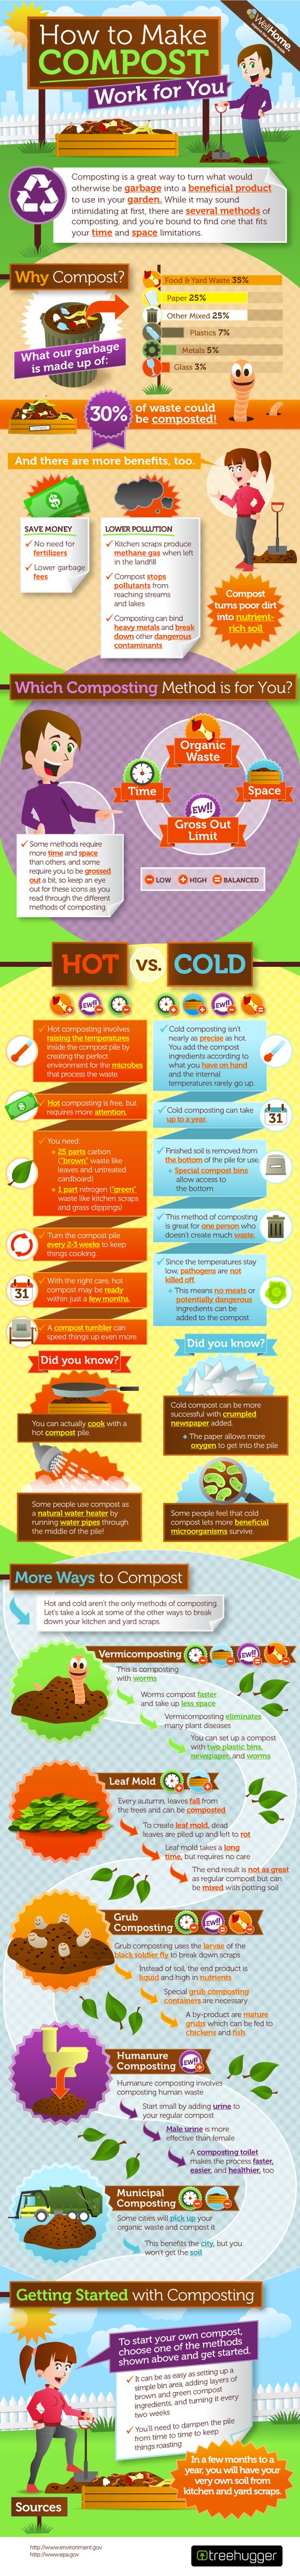 How to make compost work for you infographic